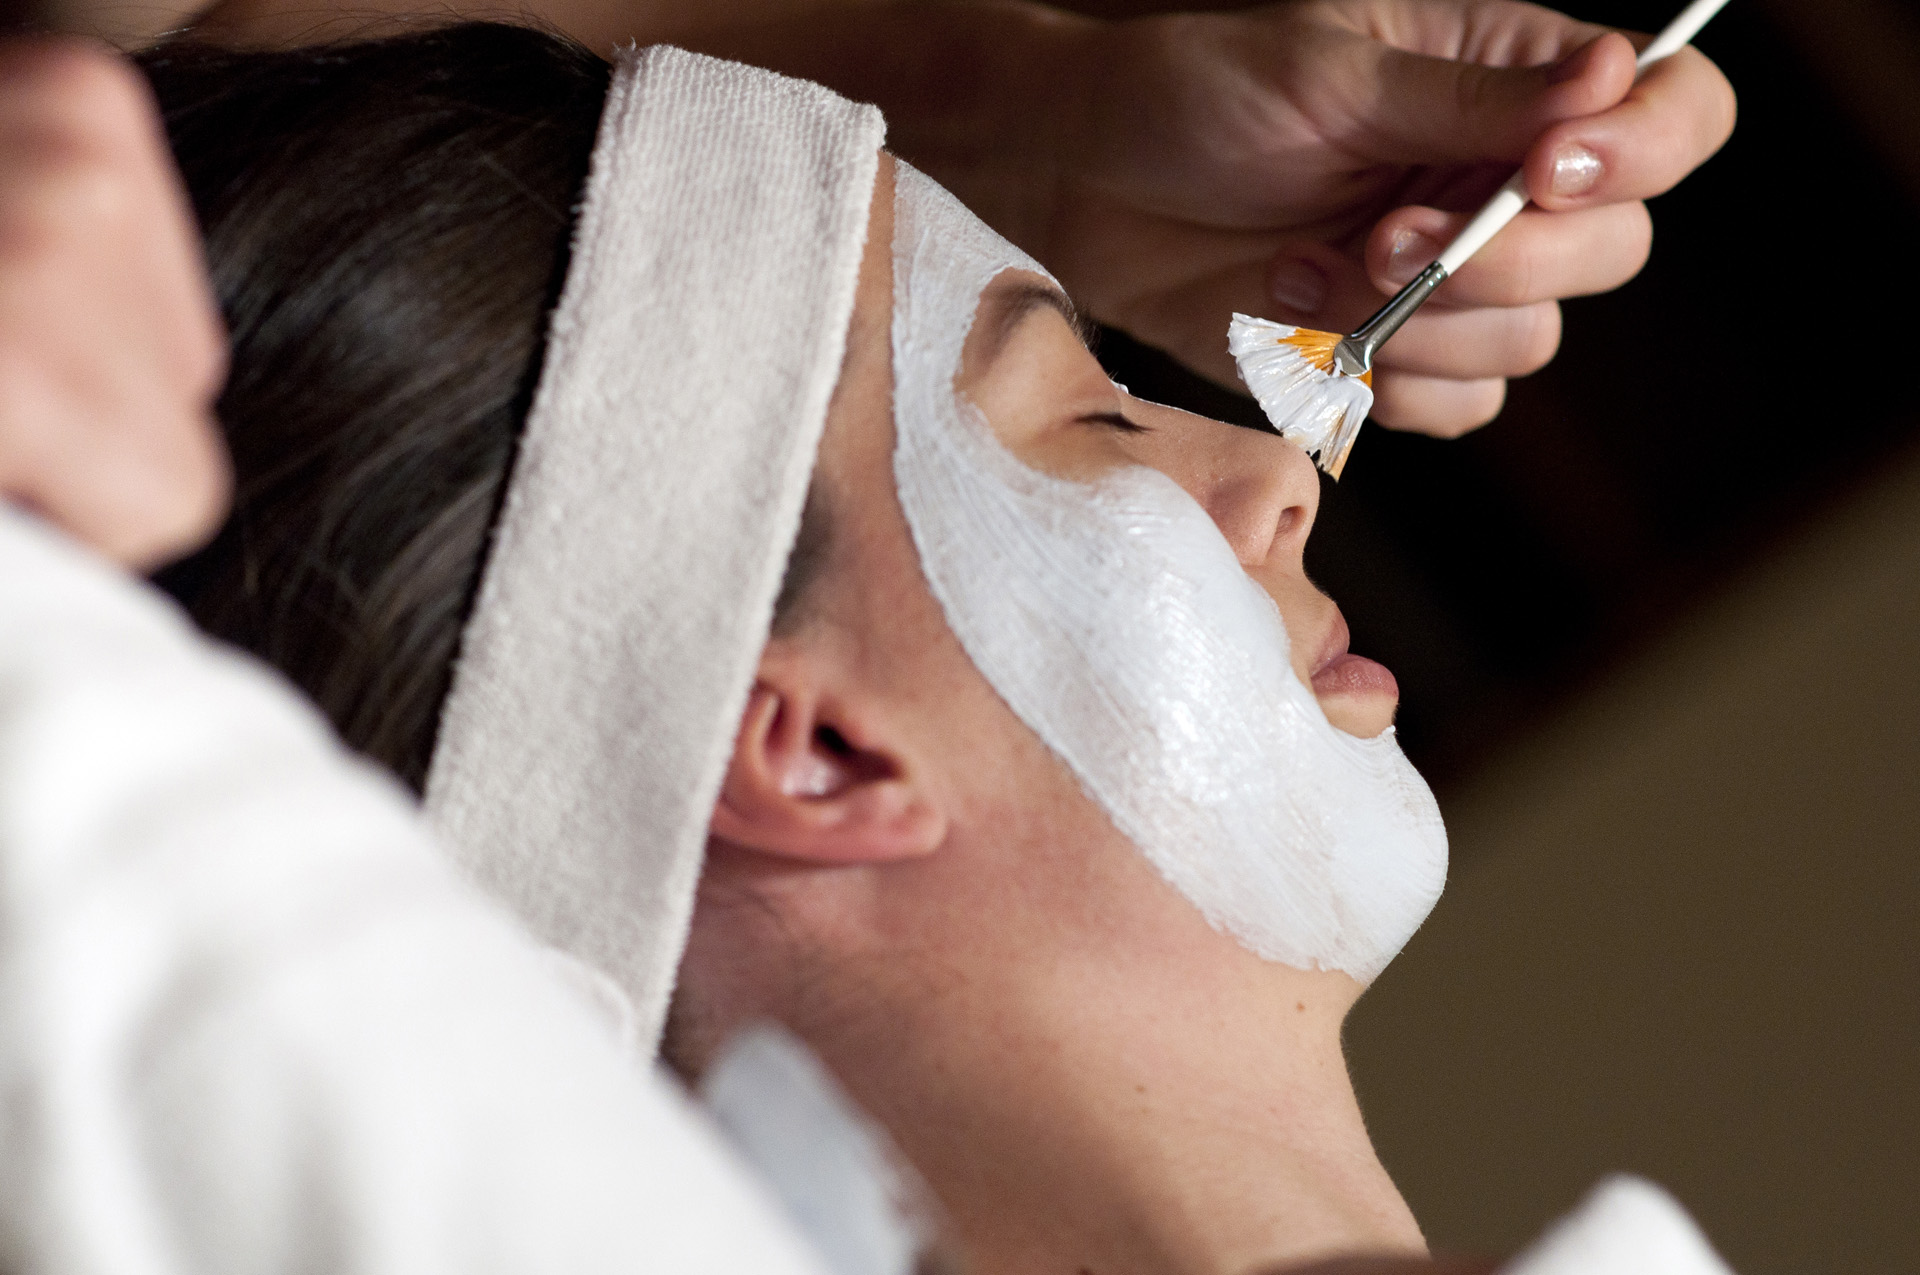 facial massage with hot and cold stones